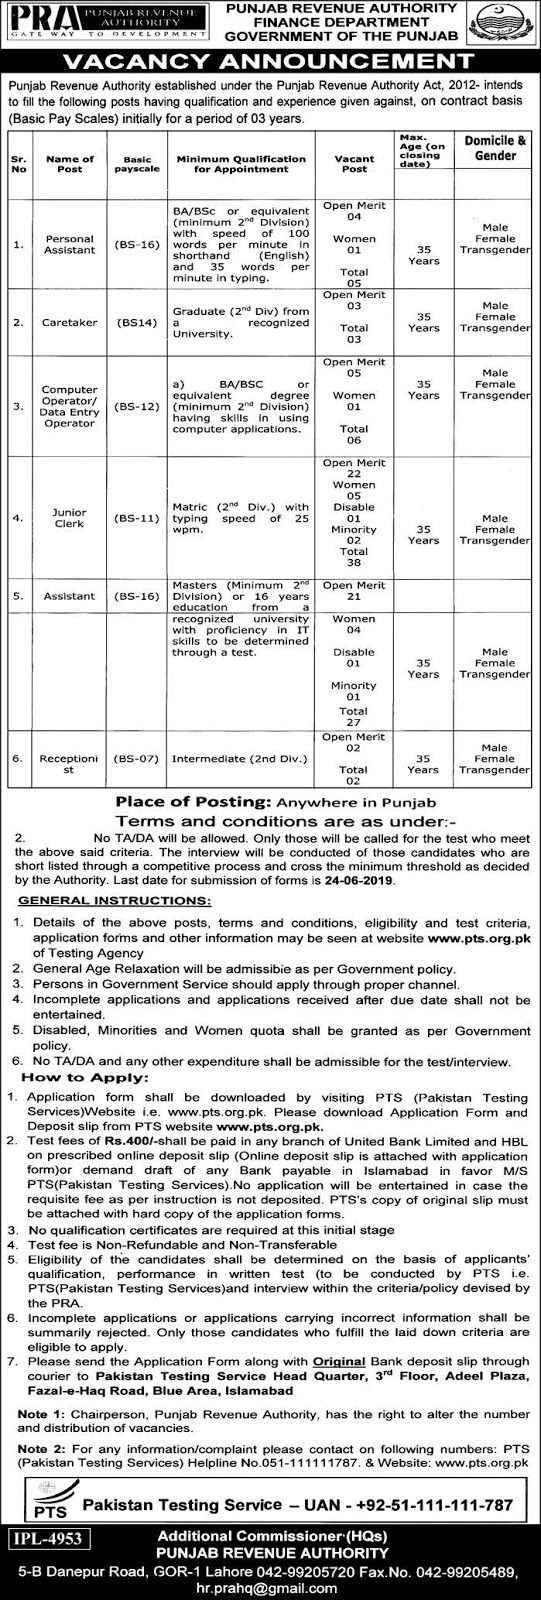 Punjab Revenue Authority Jobs 2019 June Govt of Punjab